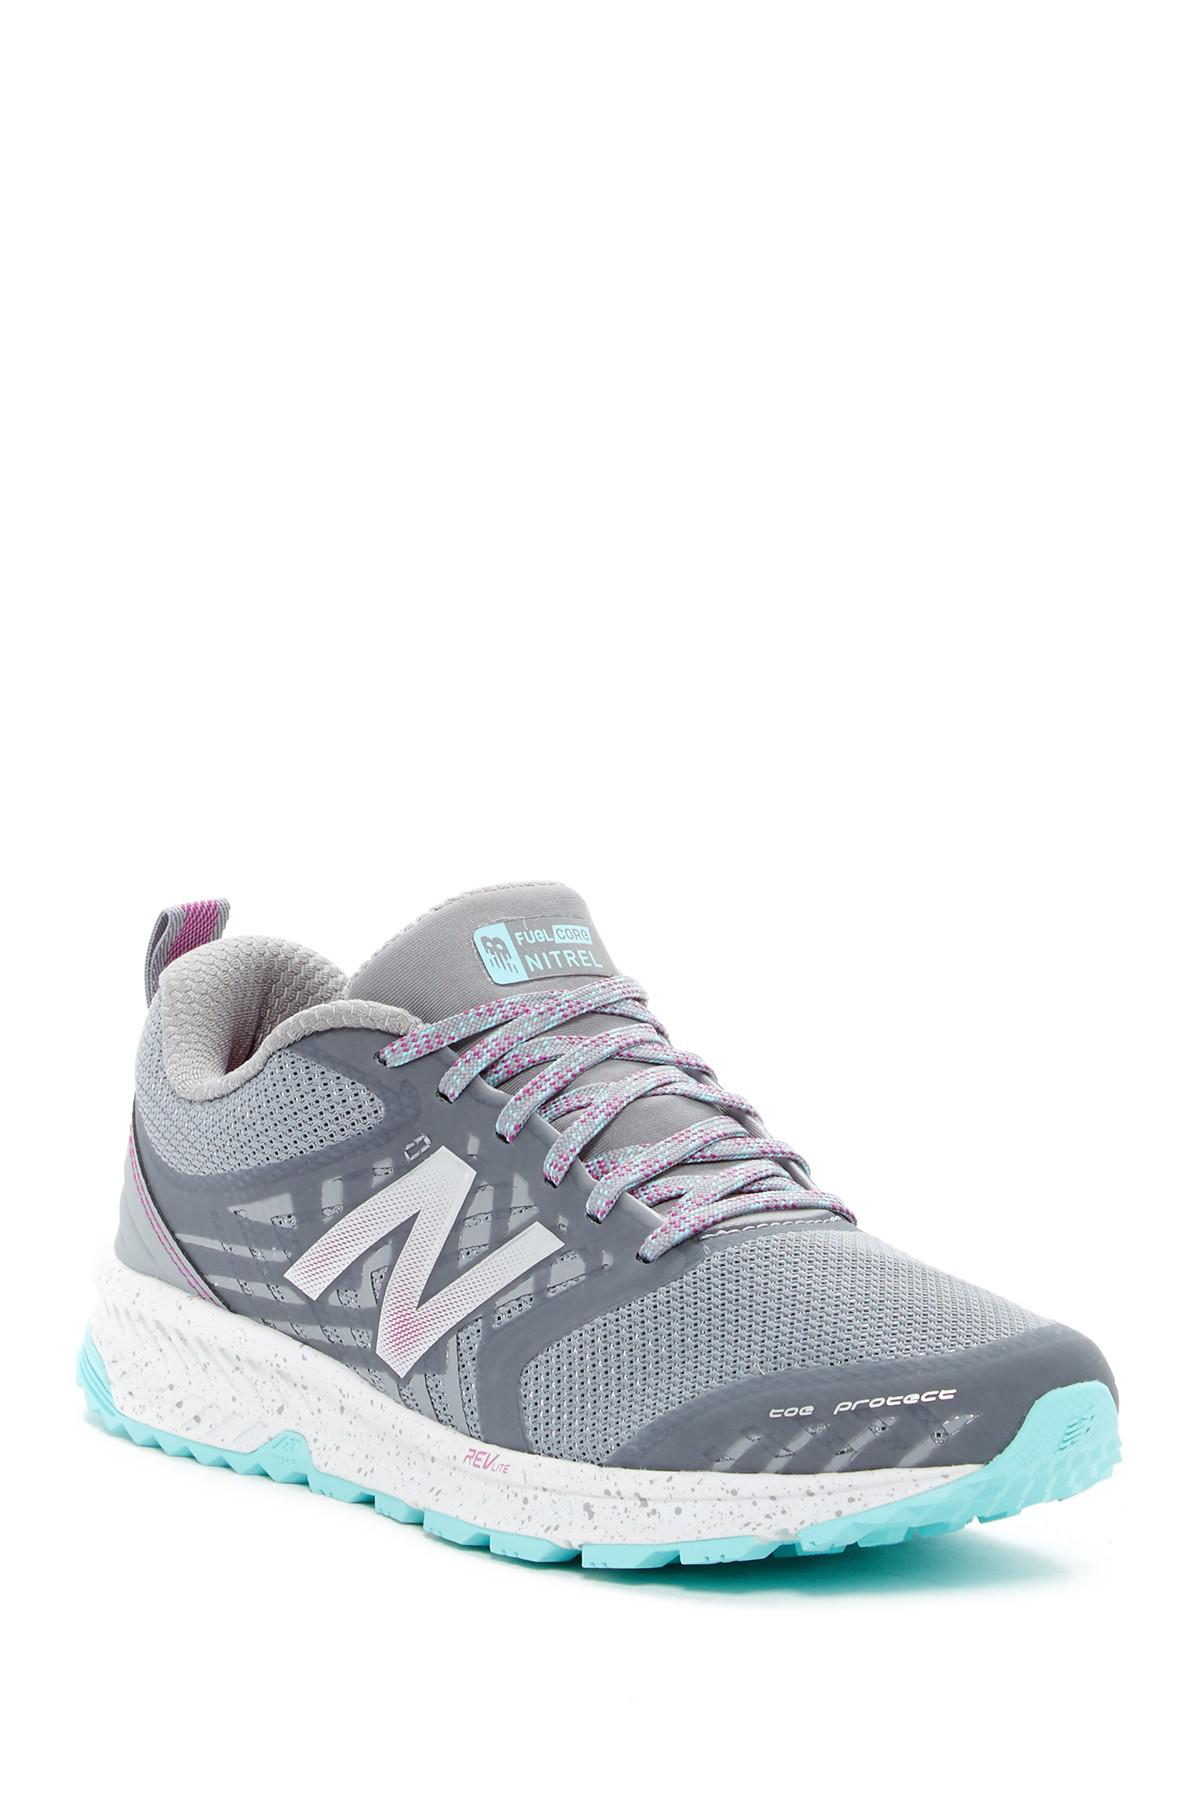 New Balance FuelCore NITREL Trail Running Sneaker - Wide Width Available